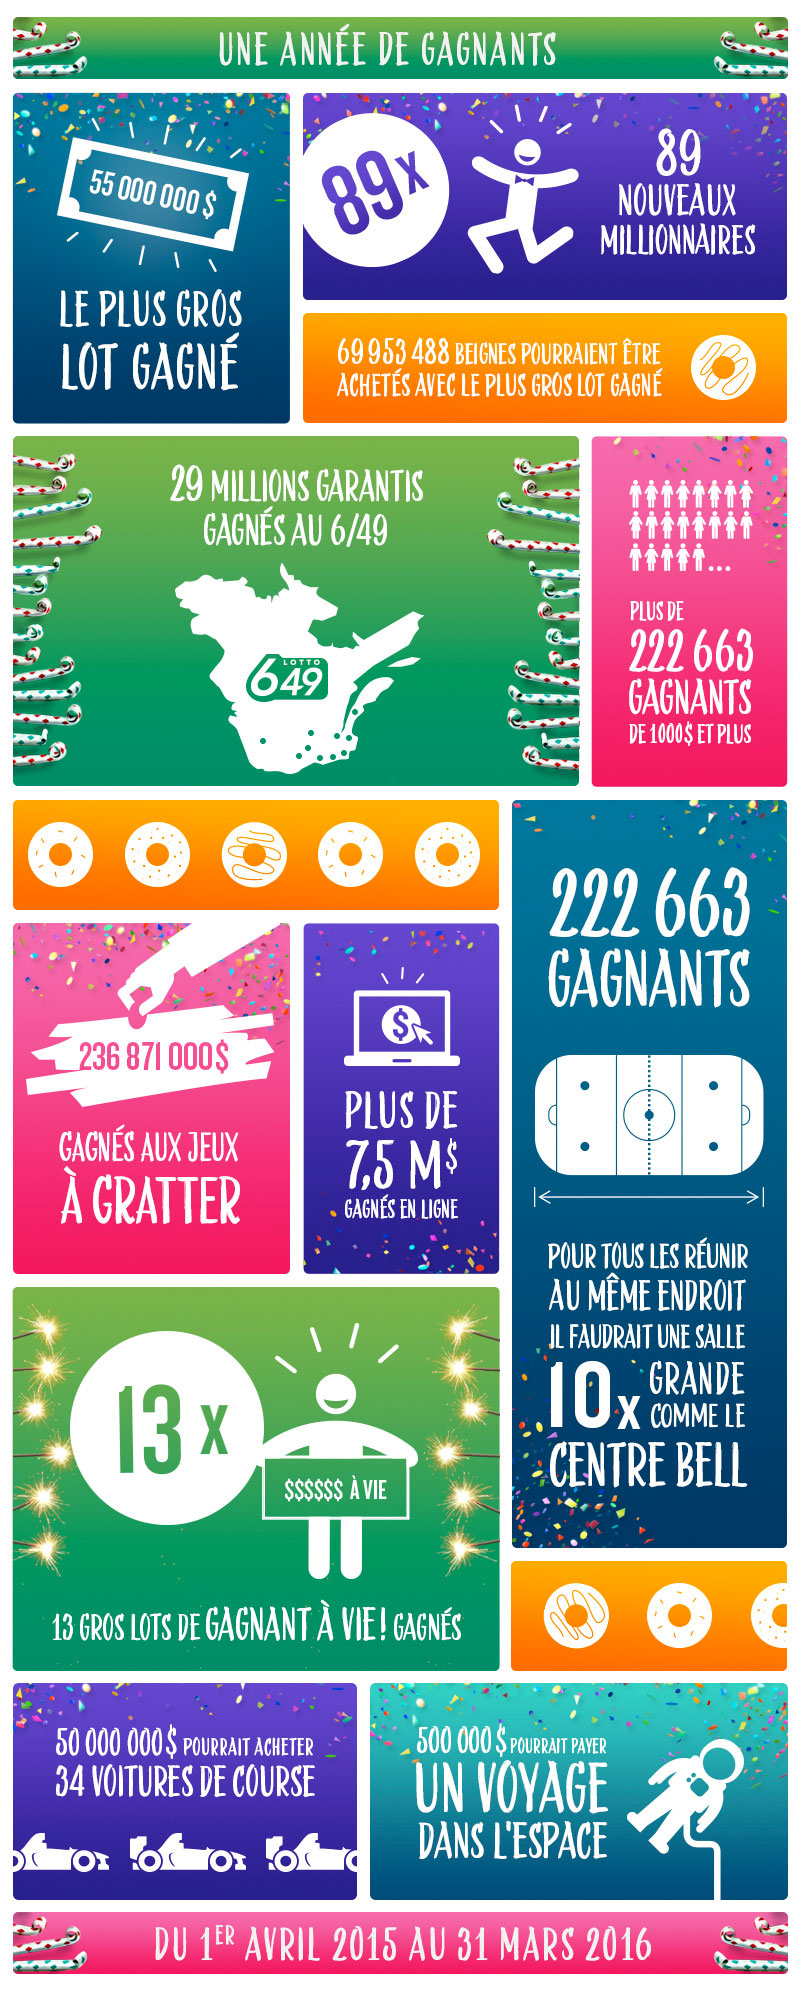 Gagnants_infographie